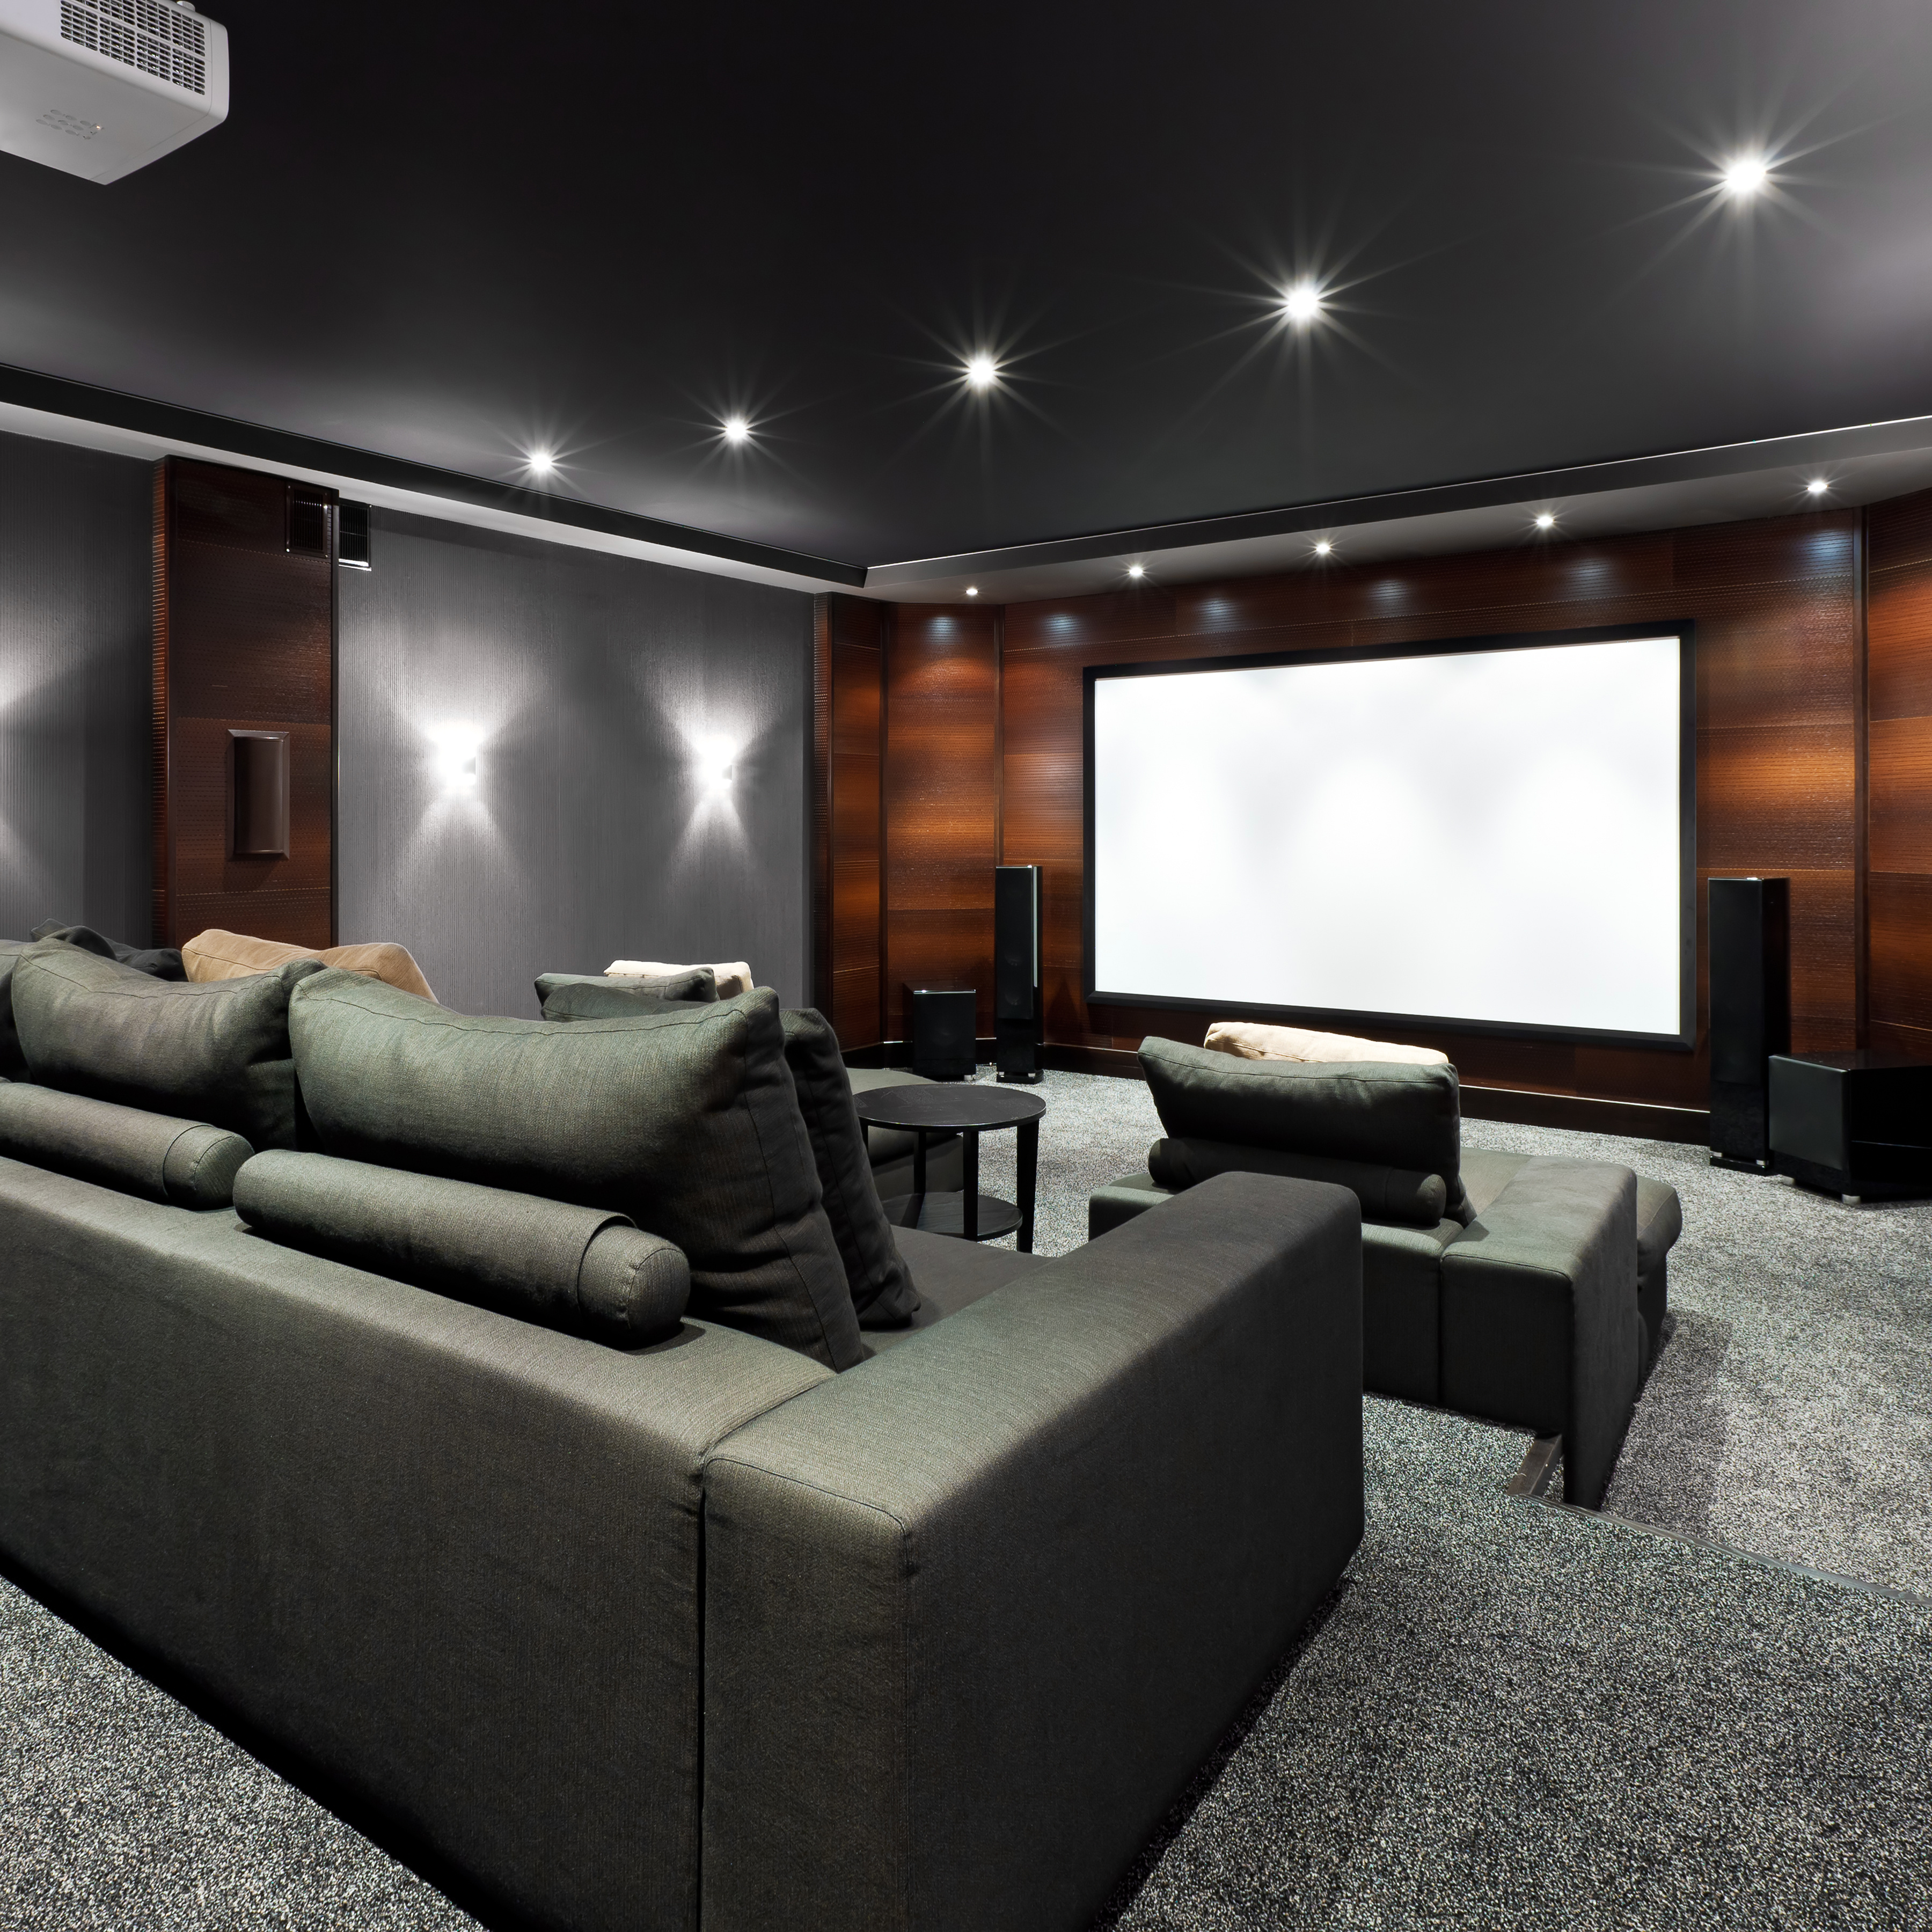 Use these tips and tricks to make your cozy home feel spacious and comf. Home Theater and Media Room Design Ideas